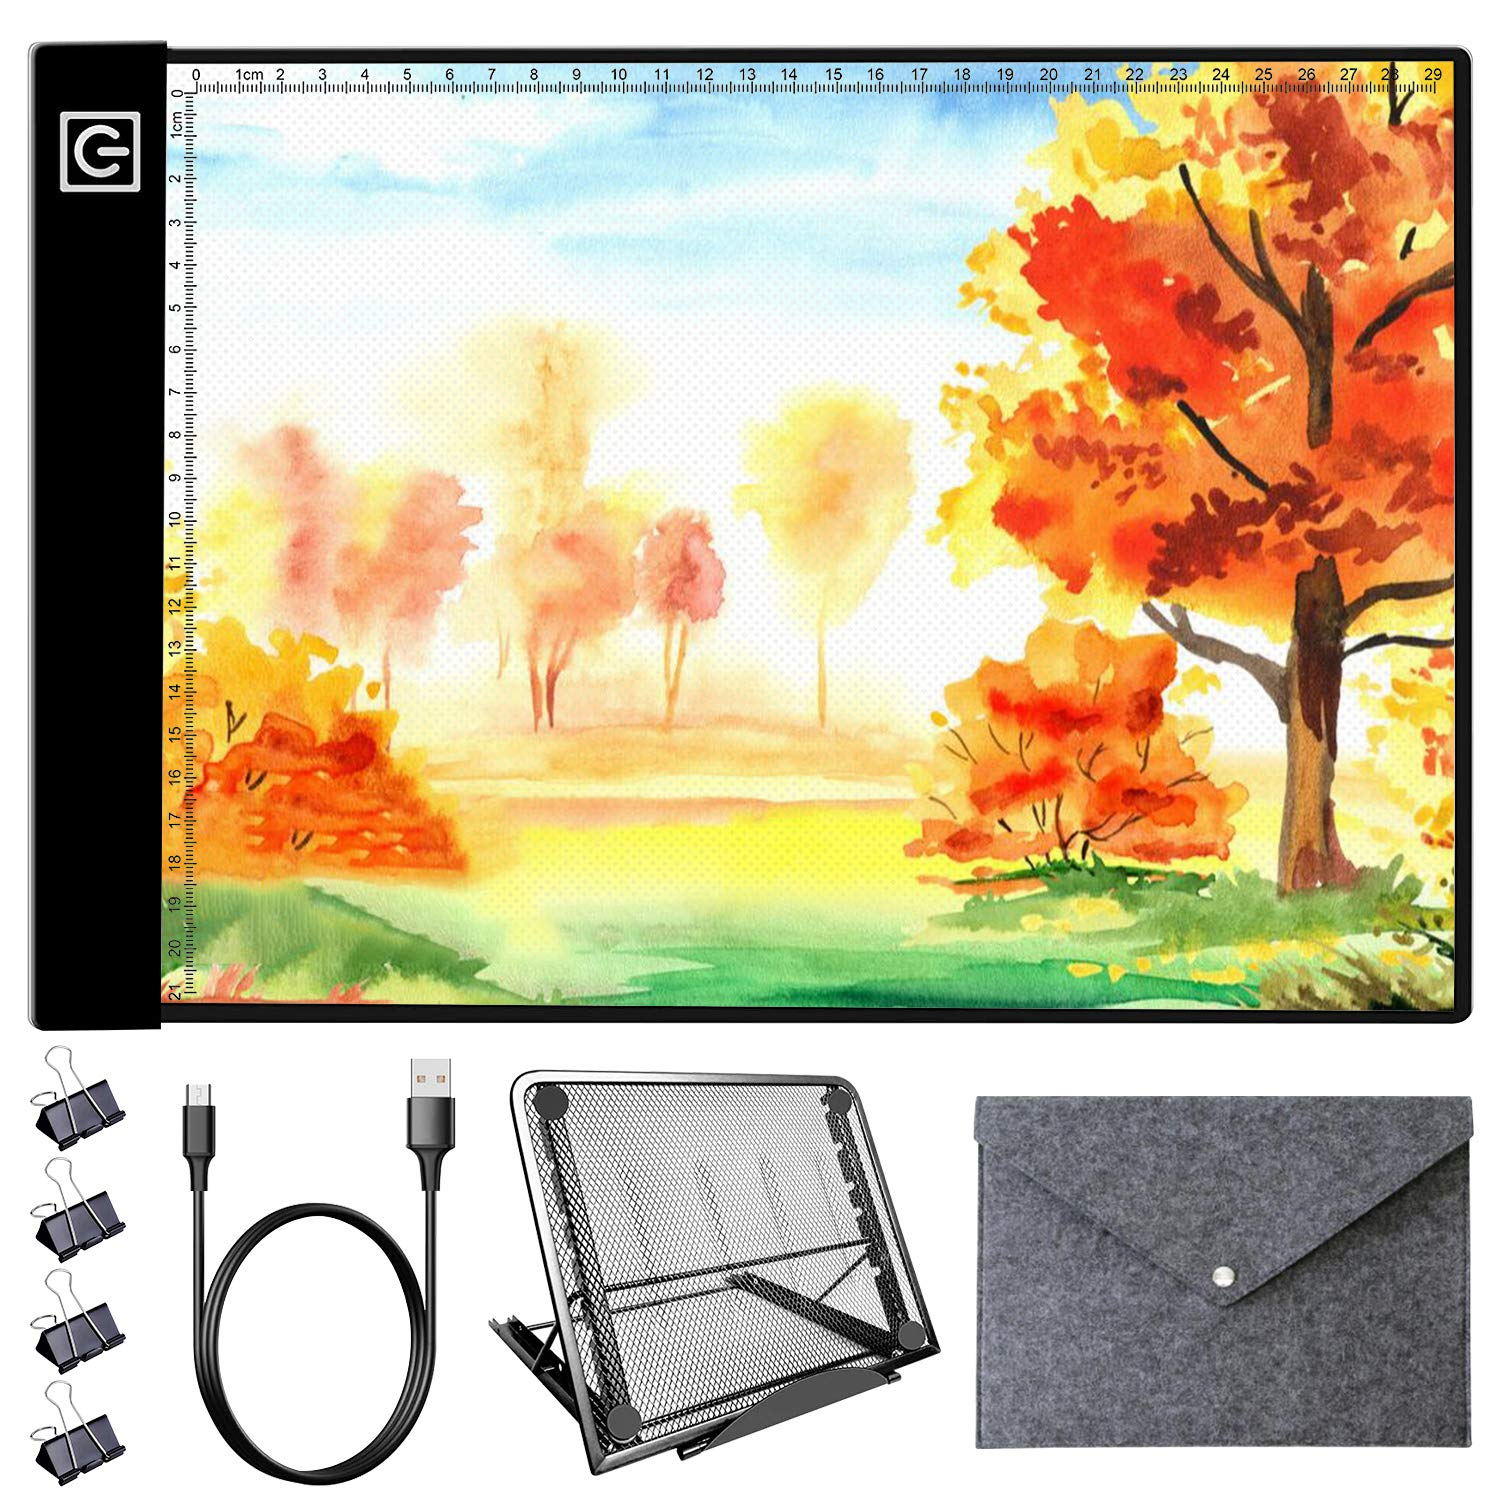 LED Light Pad Kit - A4 Diamond Painting Light Box Dimmable Tracing Light Board, Sketching, Animation, Drawing Light Box with 4 Fasten Clips, Metal Stand and Felt Bag